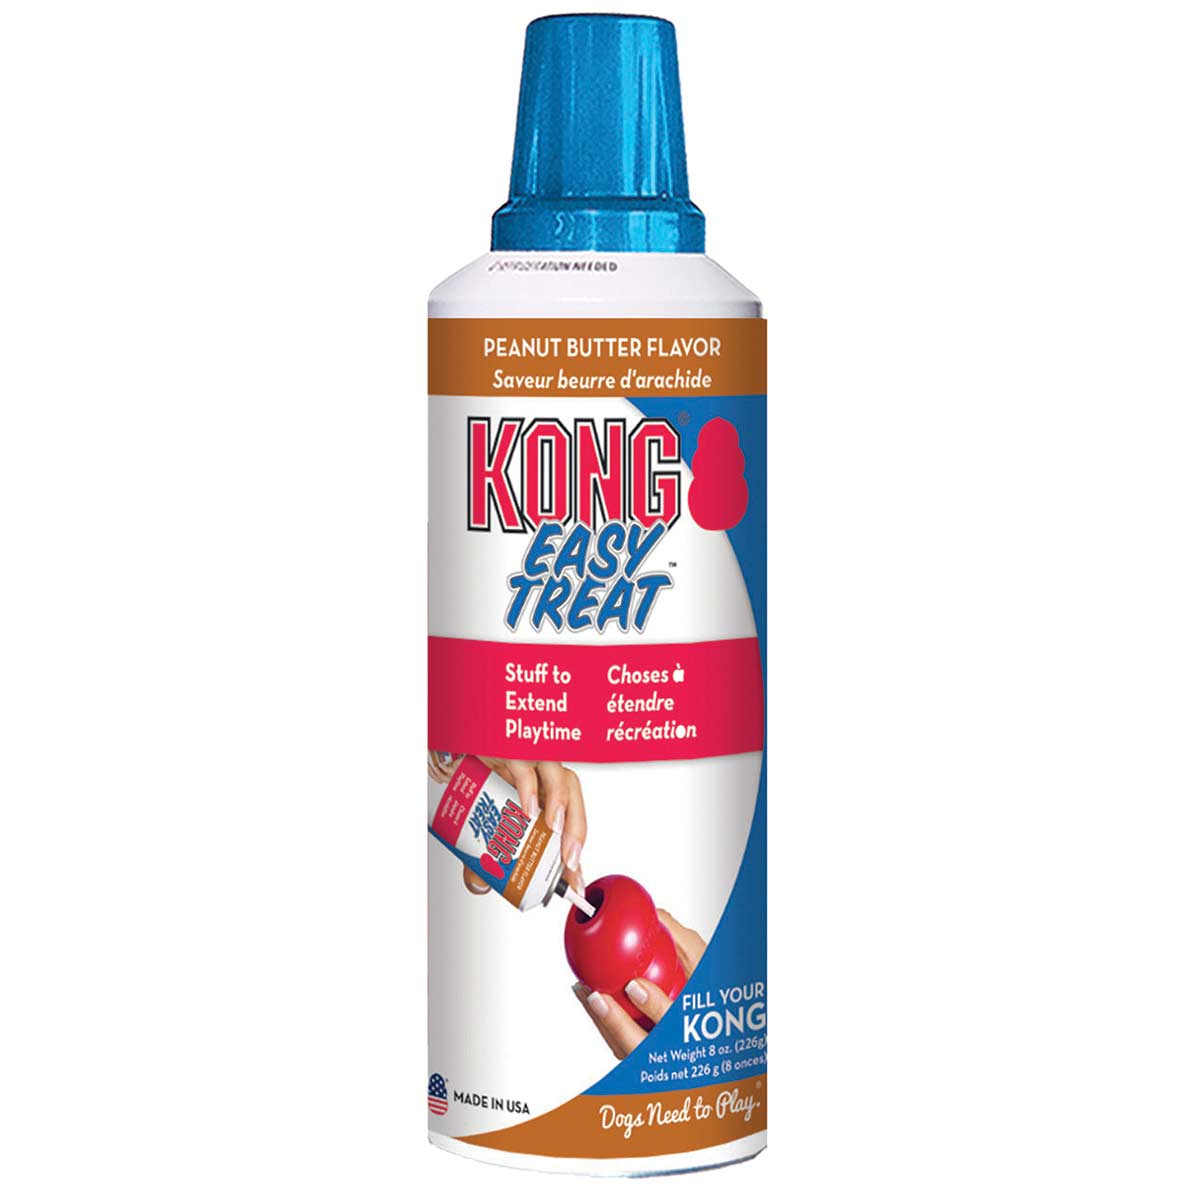 8 oz KONG Peanut Butter Flavor Easy Treat for Dogs